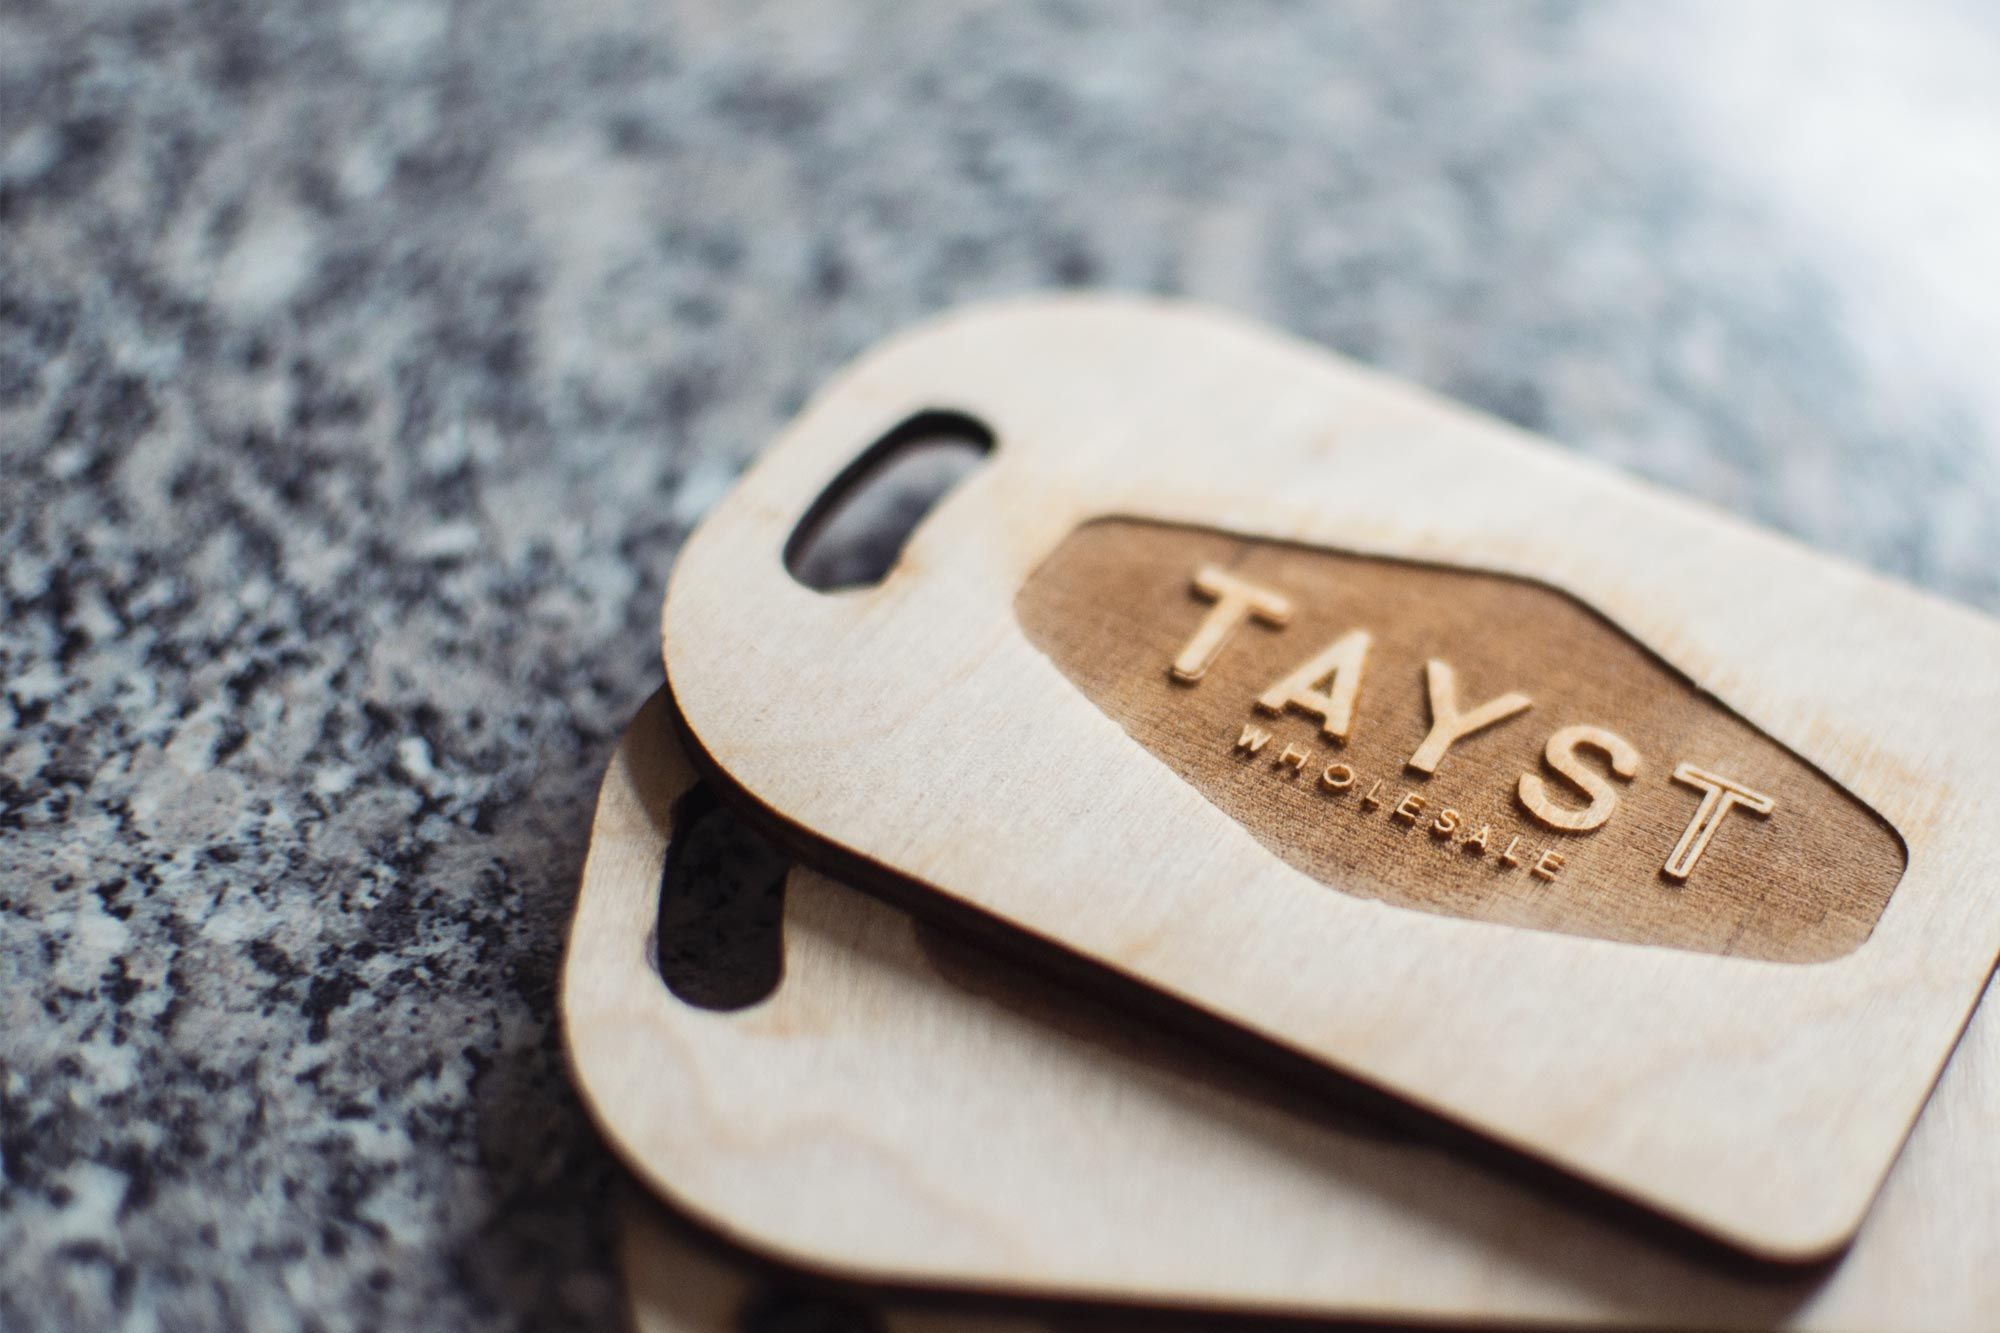 Bespoke laser engraved chopping board business cards for TAYST